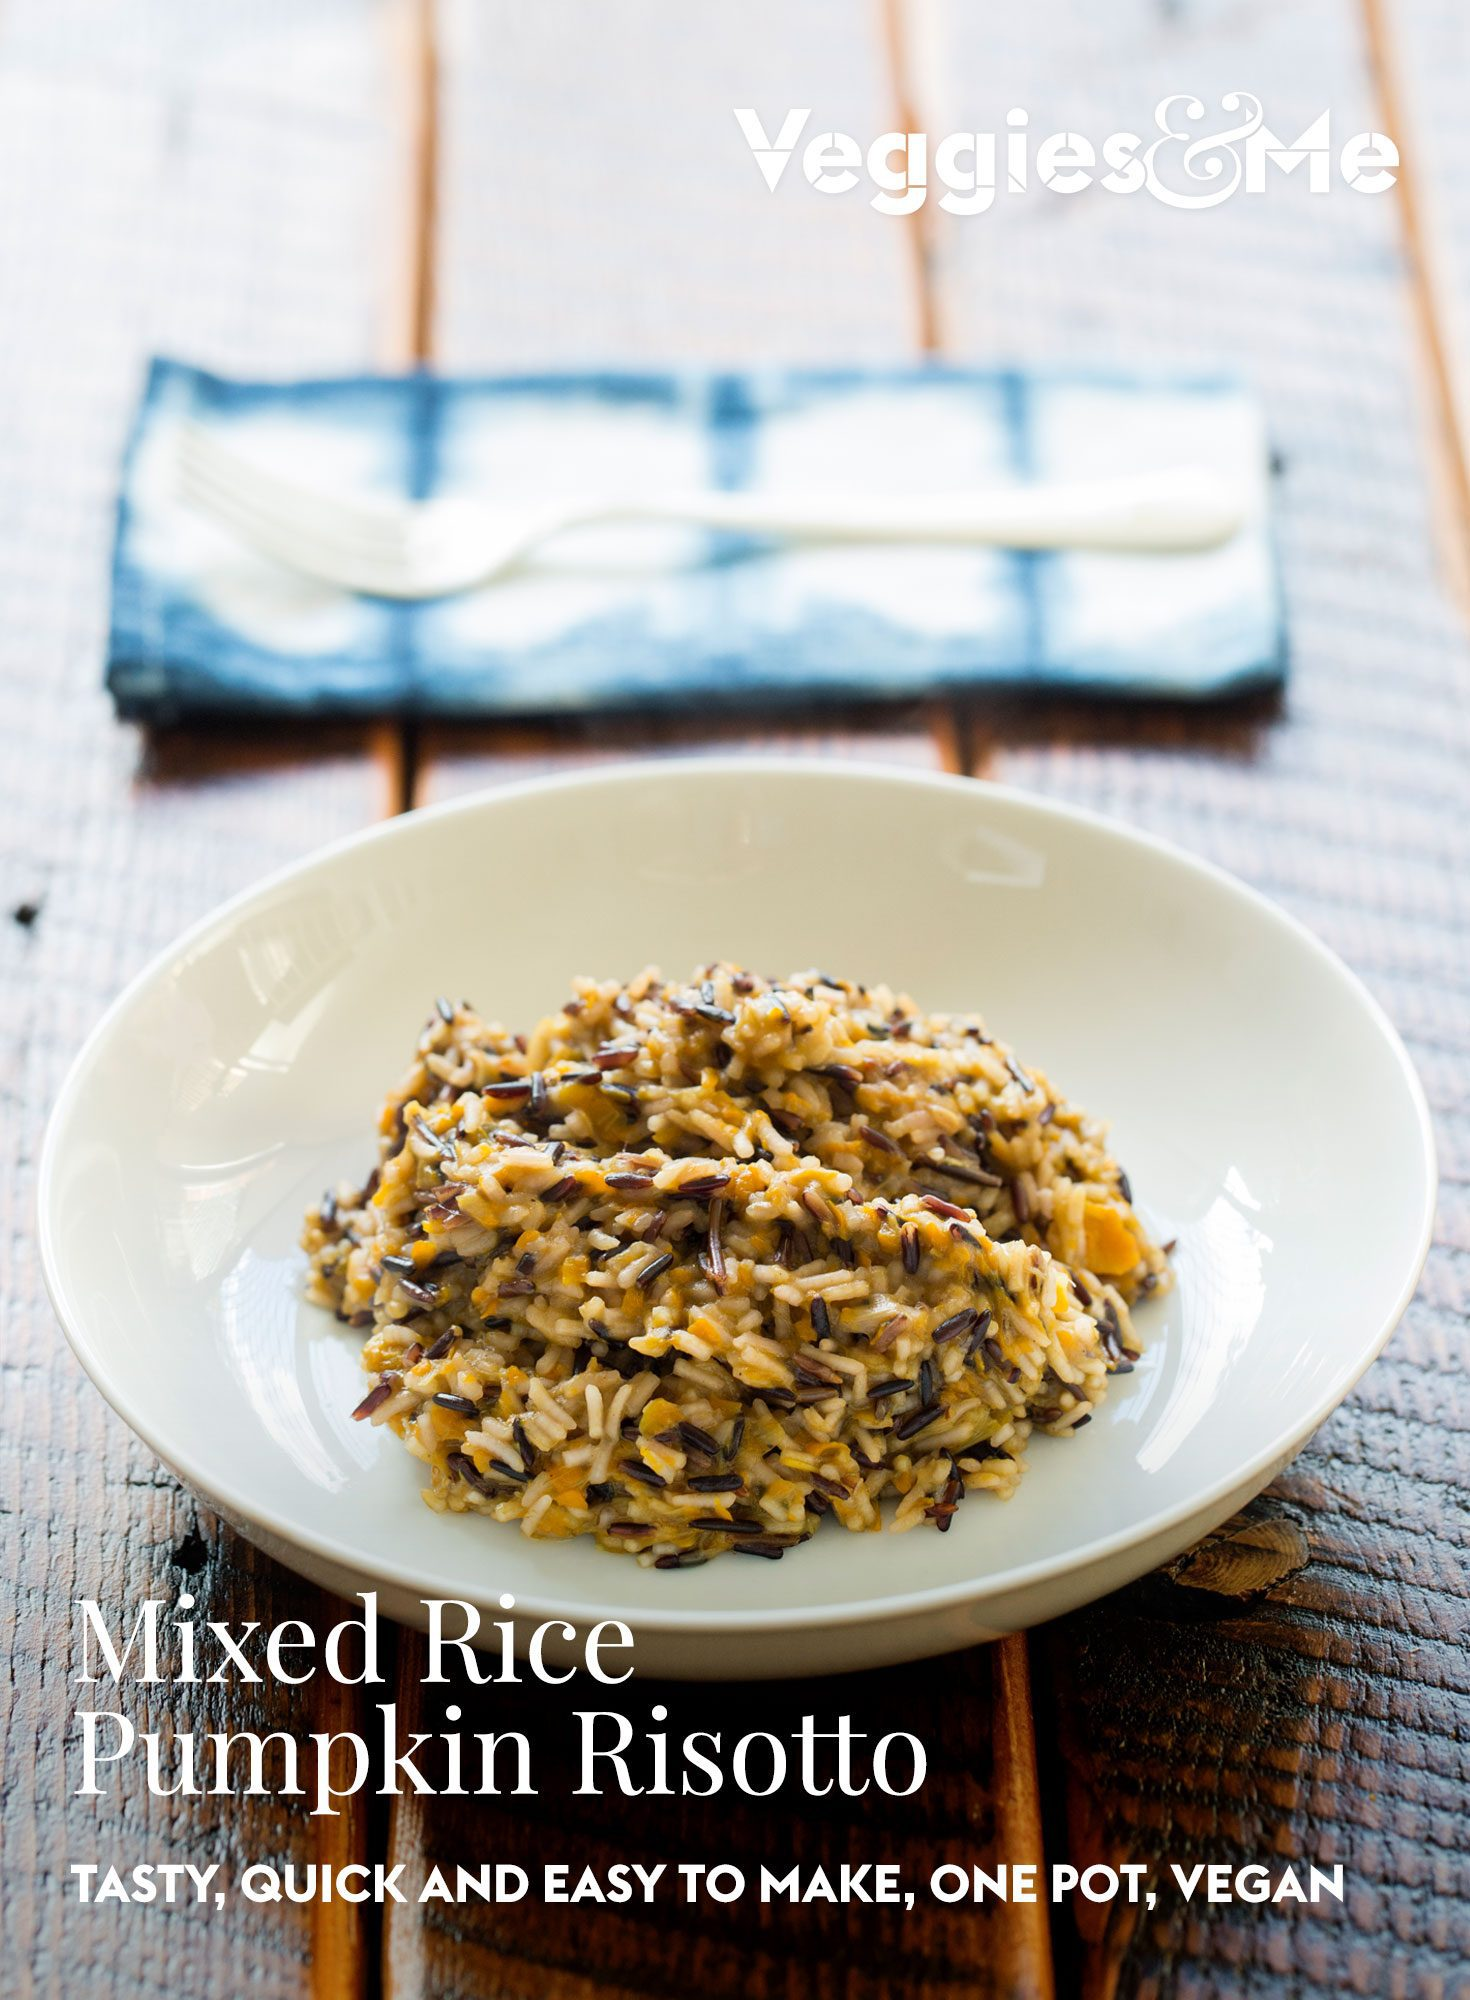 Mixed rice pumpkin risotto